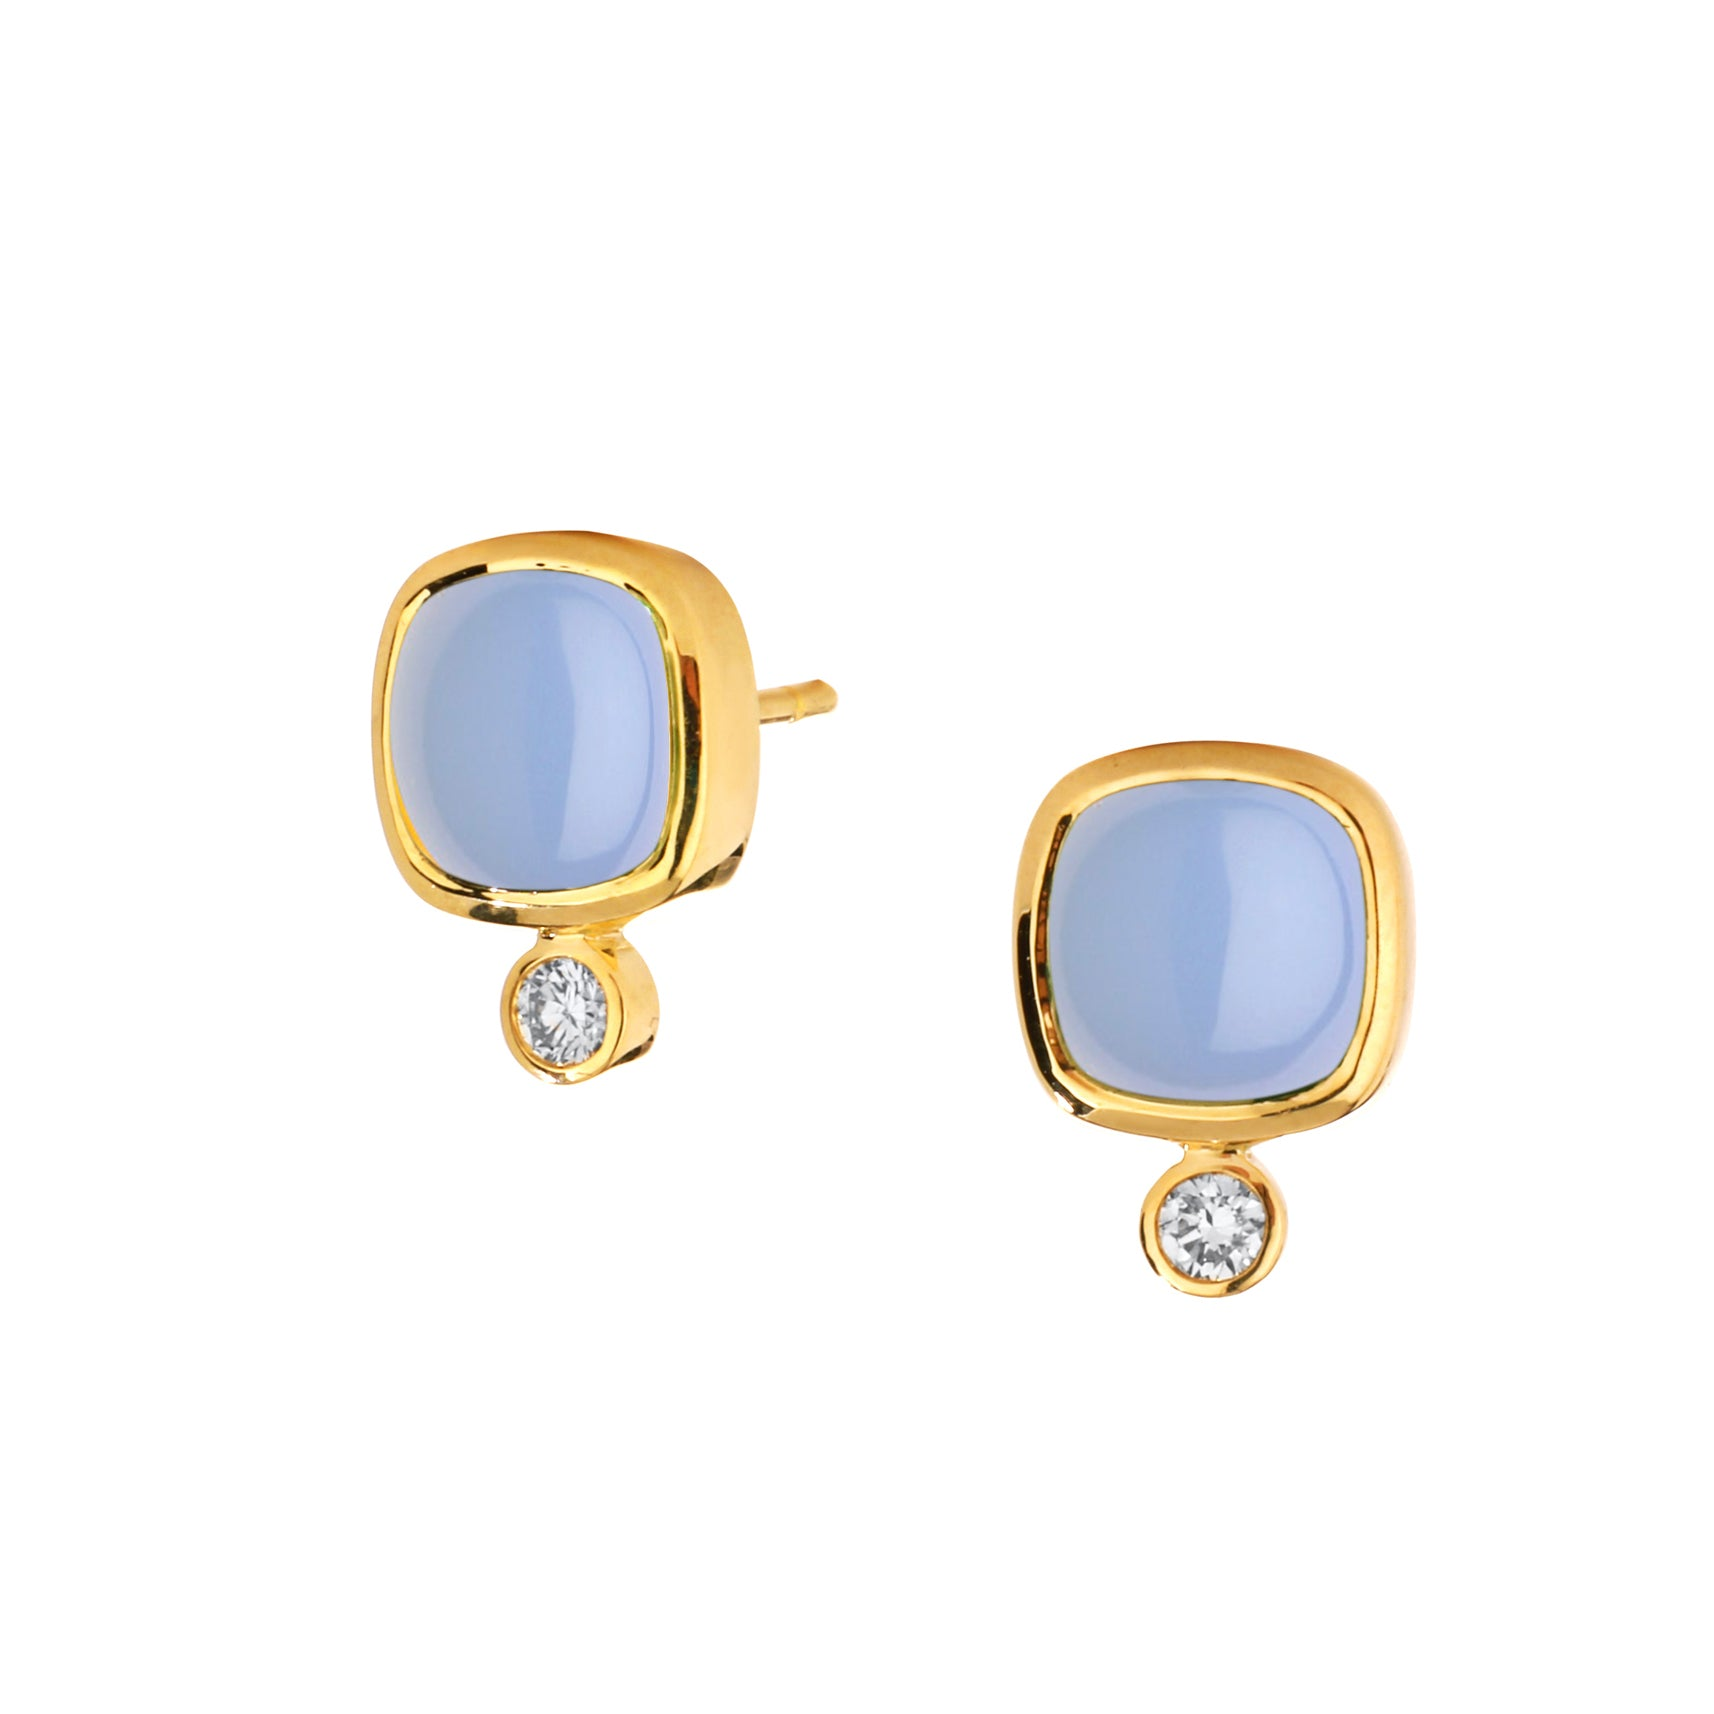 Syna_Jewels_Blue_Chalcedony_Sugarloaf_Champagne_Diamond_18_Karat_Yellow_Gold_Stud_Post